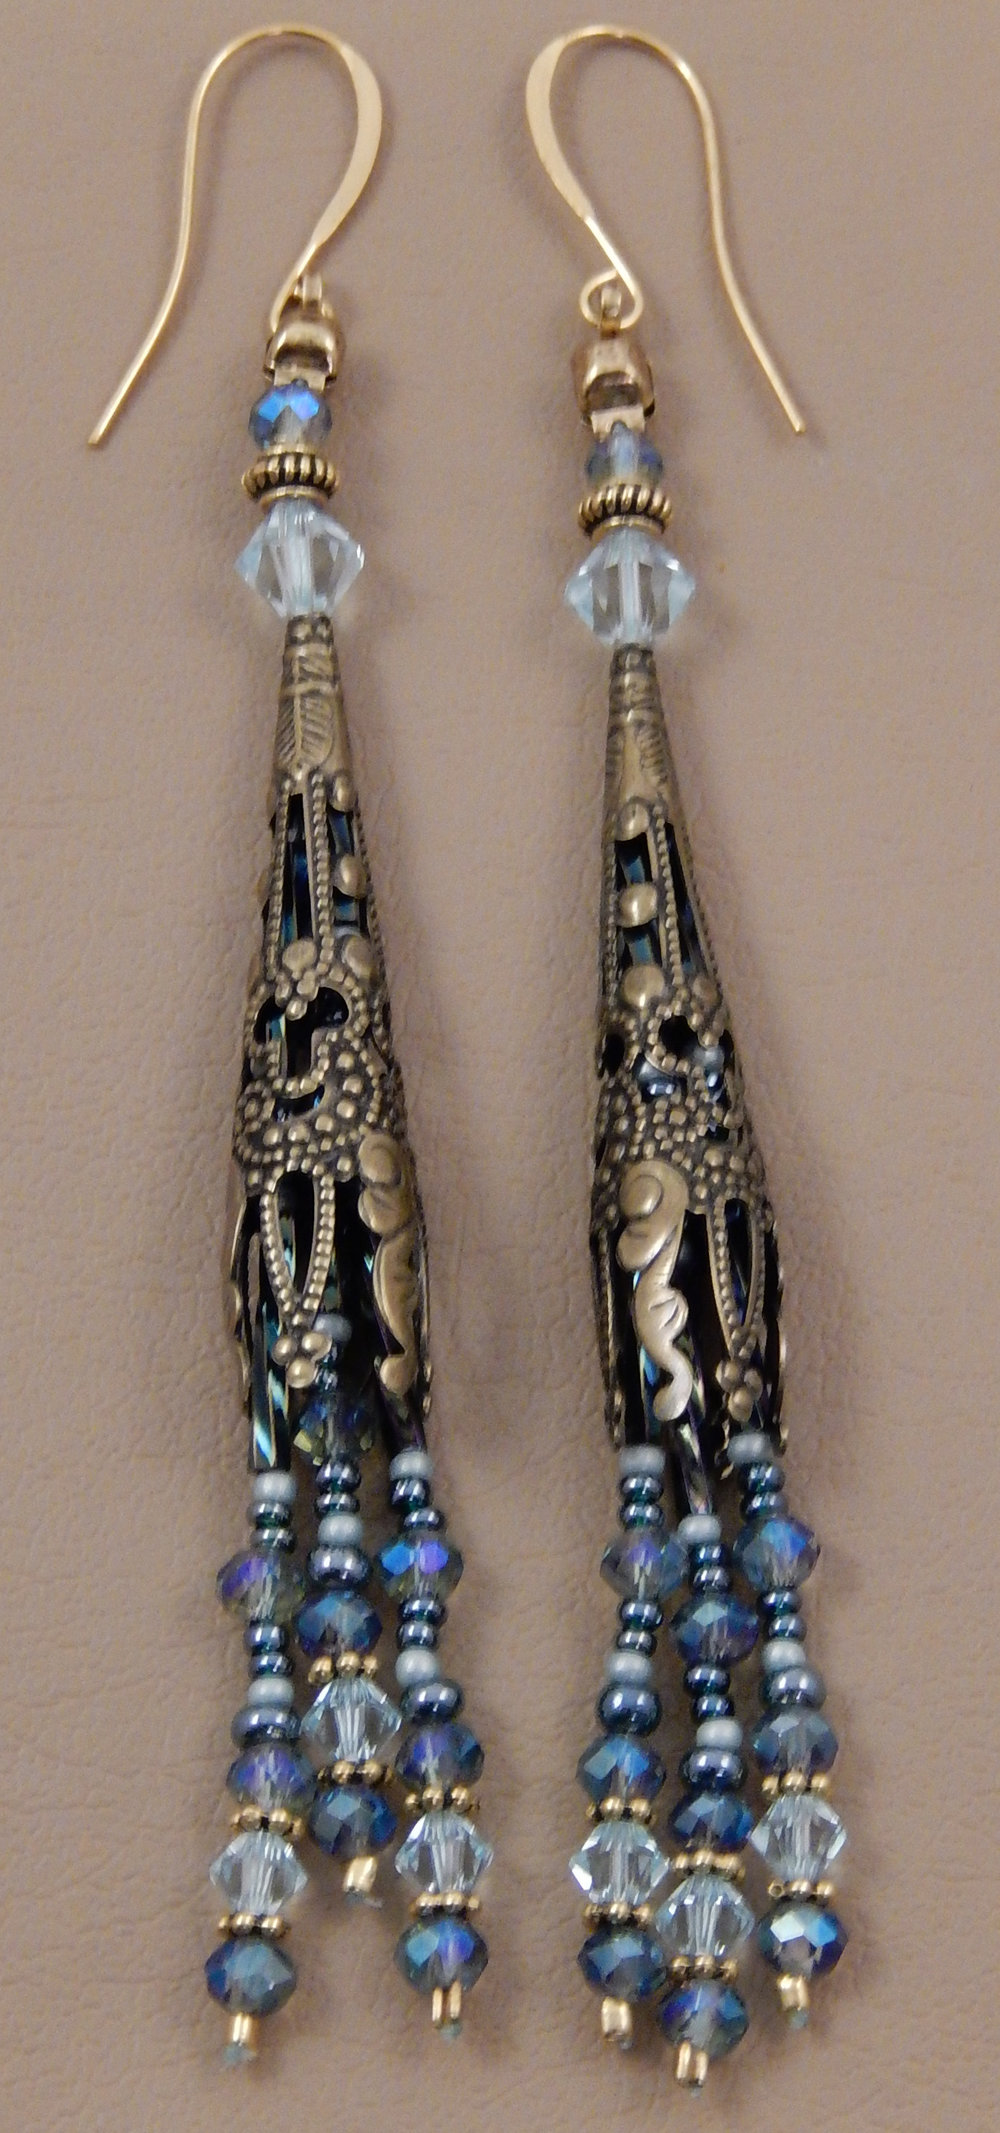 Decorative brass Bali style cone earrings featuring aquamarine swarovski crystals and light blue faceted round crystals.